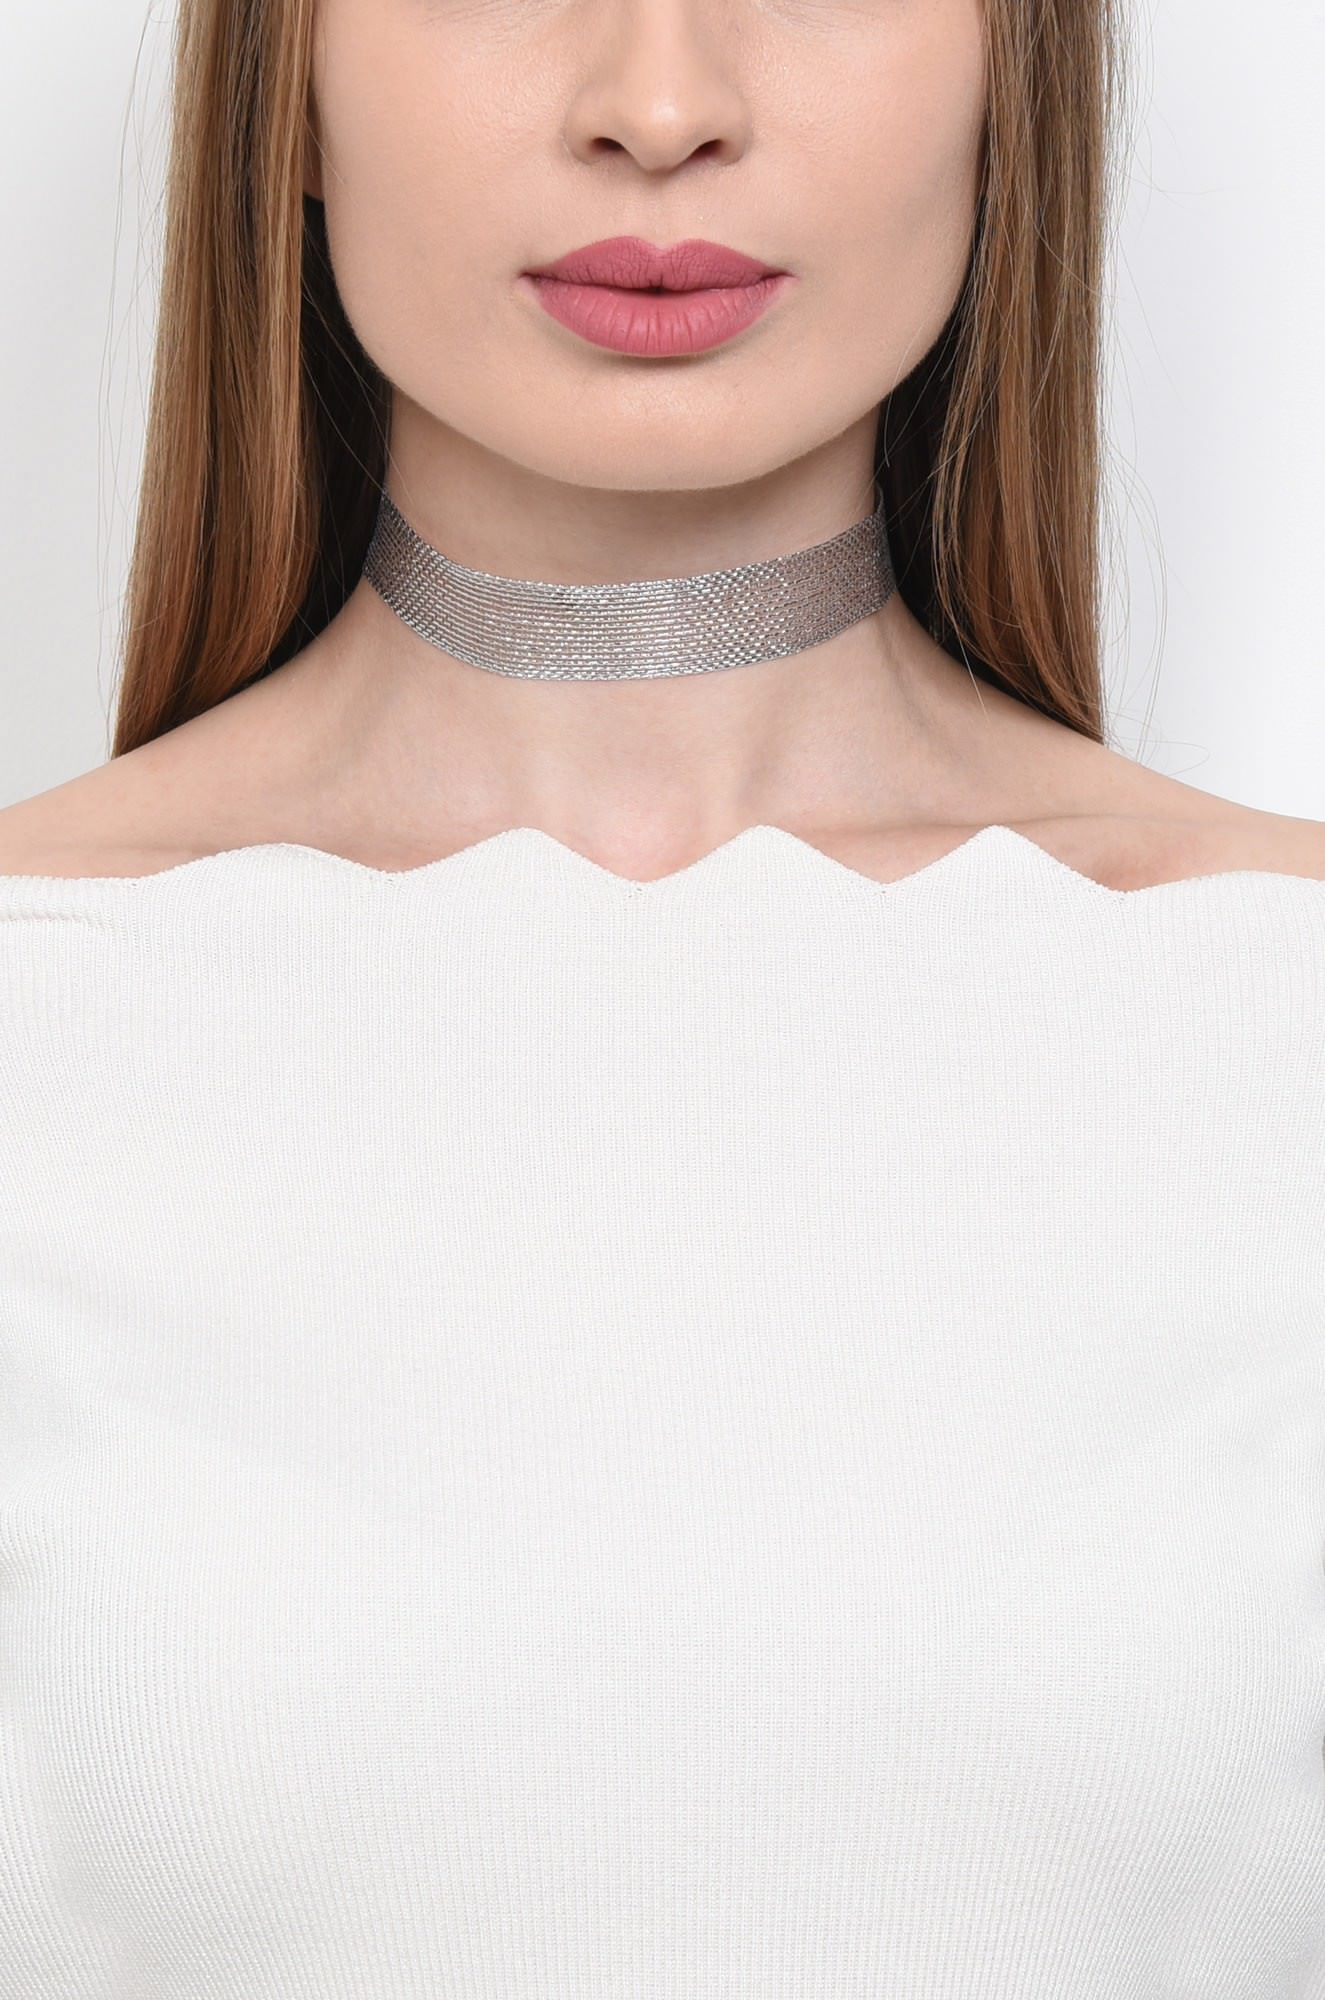 0 - COLIER TIP CHOCKER GB15021709-ARGINTIU